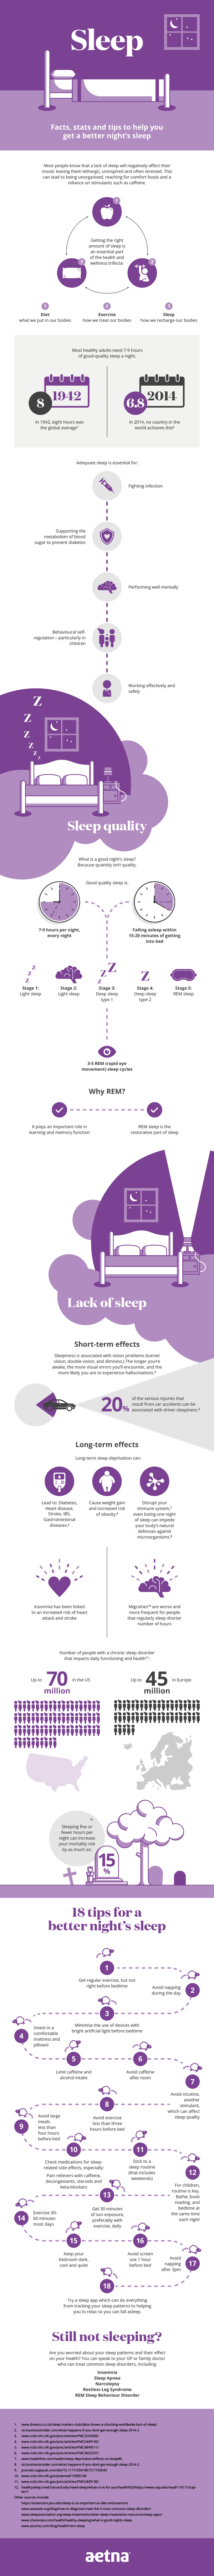 Aetna Sleep Infographic